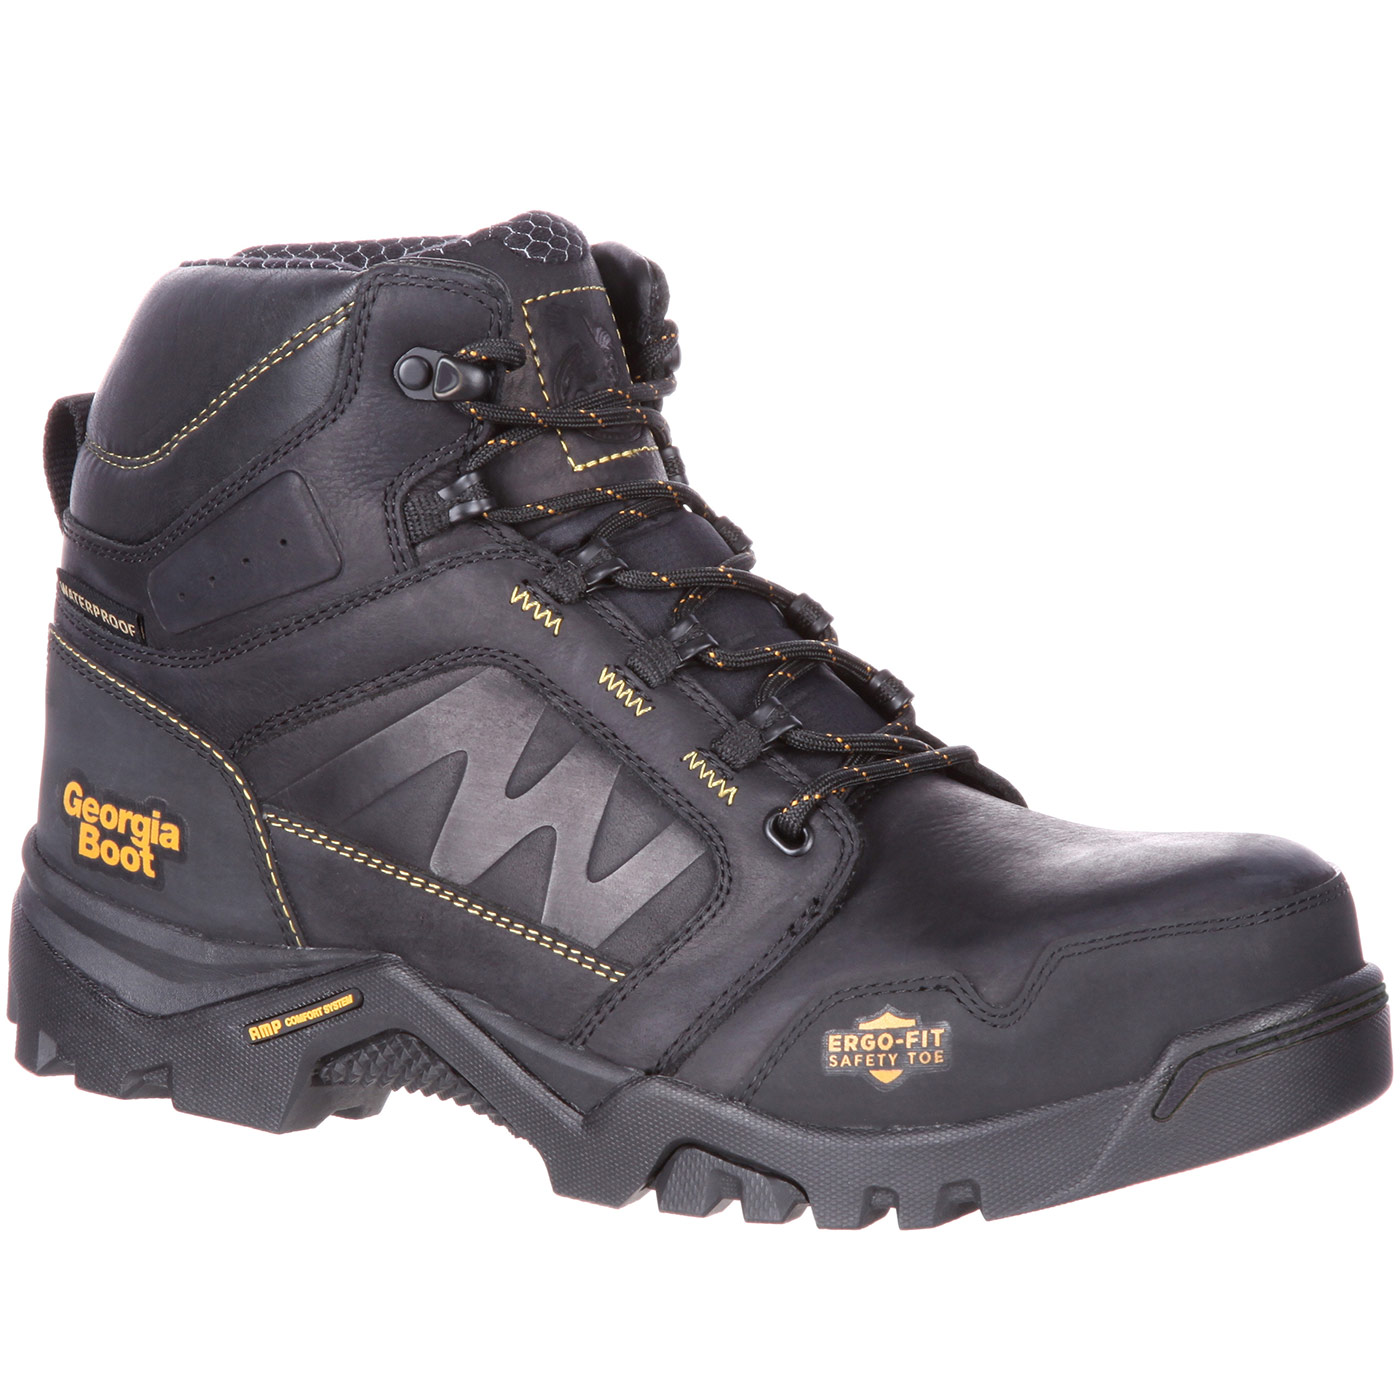 Georgia Boot Amplitude - Amplified comfort in a sporty hiker style ...